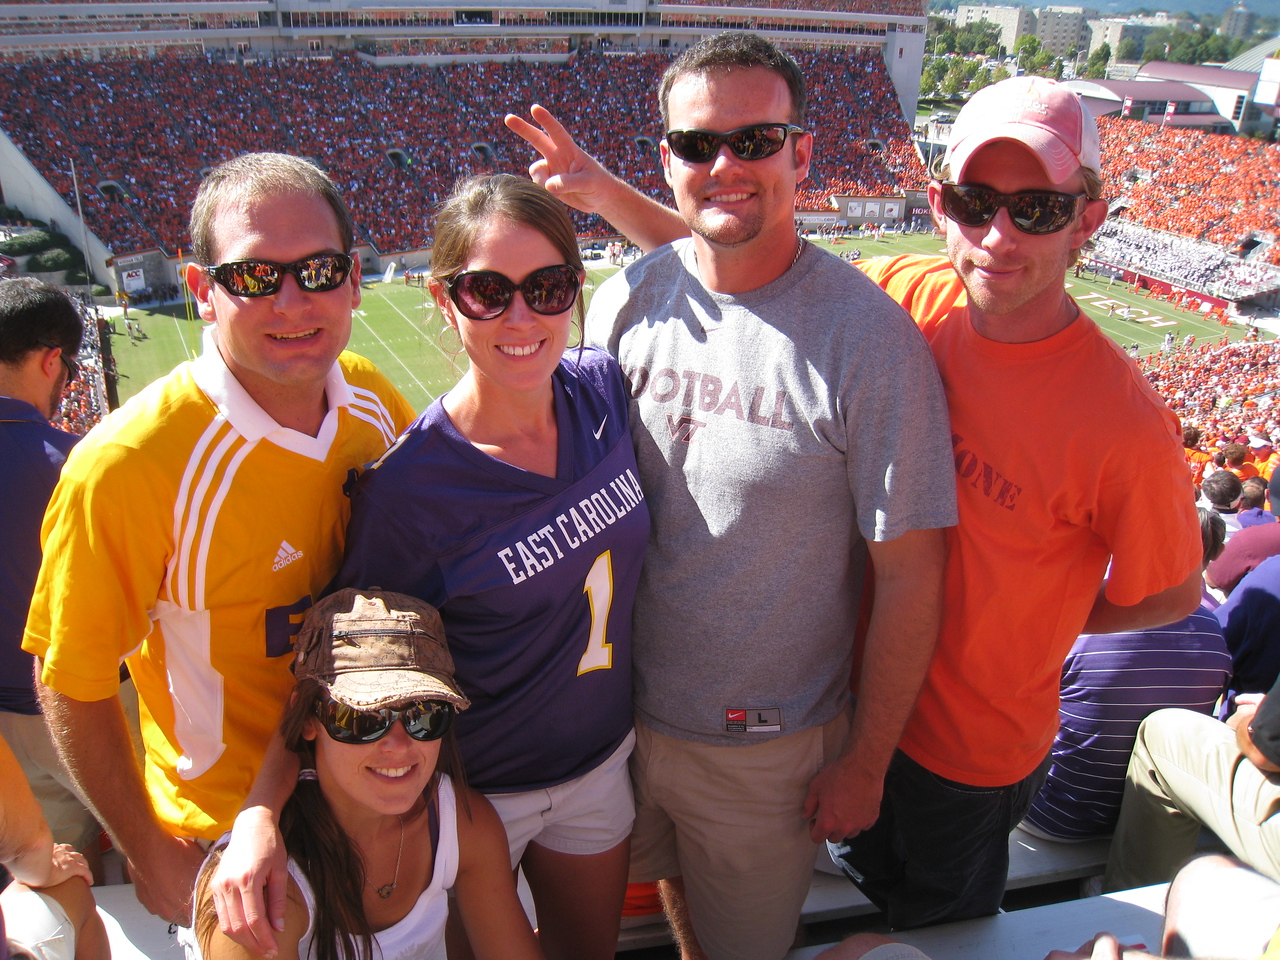 9/18/2010 ECU @ VT - Jon, Sarah, Beth, Chris